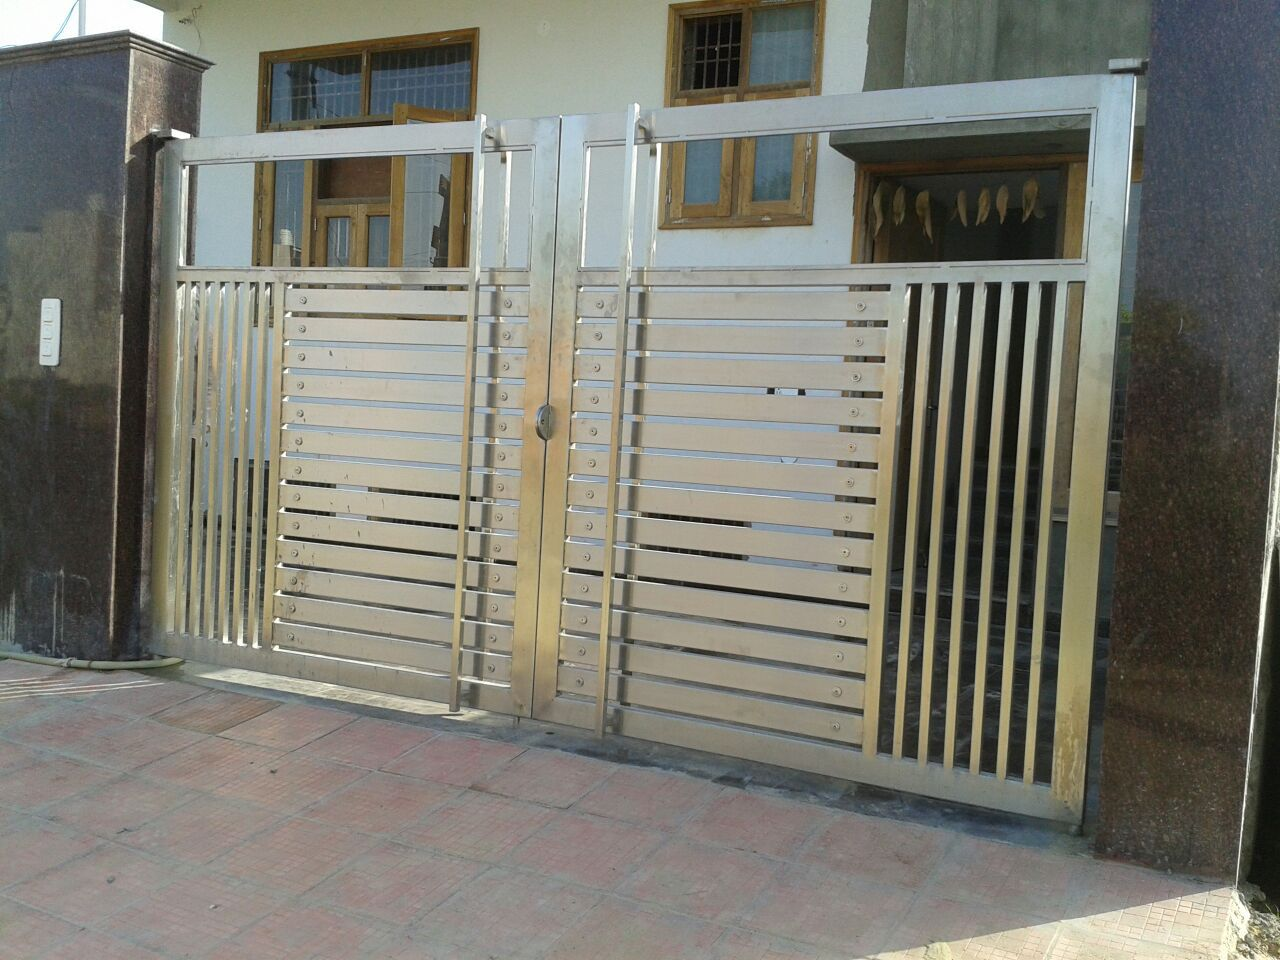 Stainless Steel Gate Manufacturer Main Gate Dezines Pinterest Steel Gate Gate And